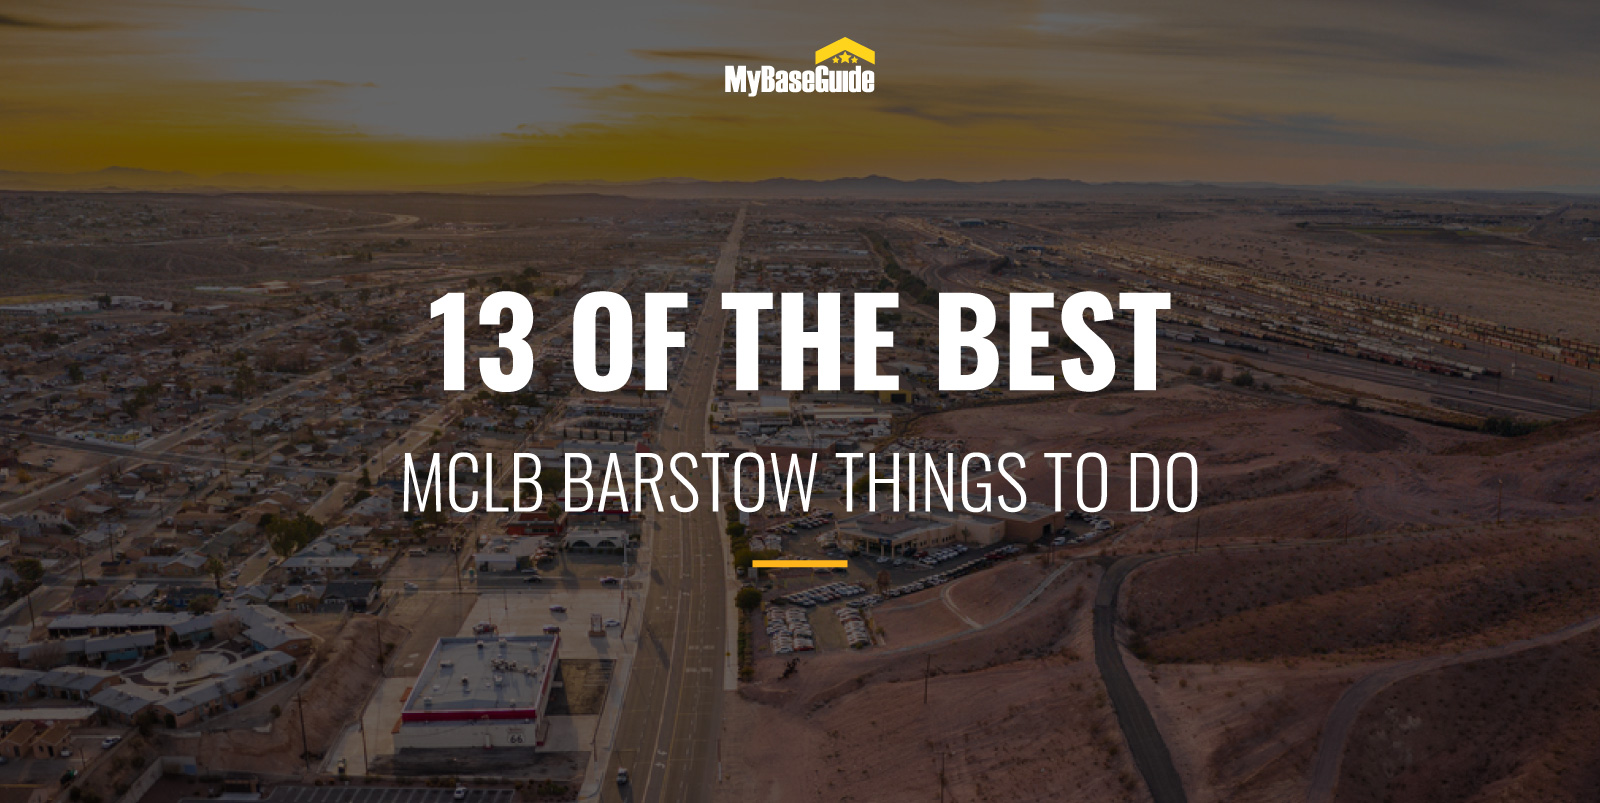 13 Of the Best MCLB Barstow Things to Do